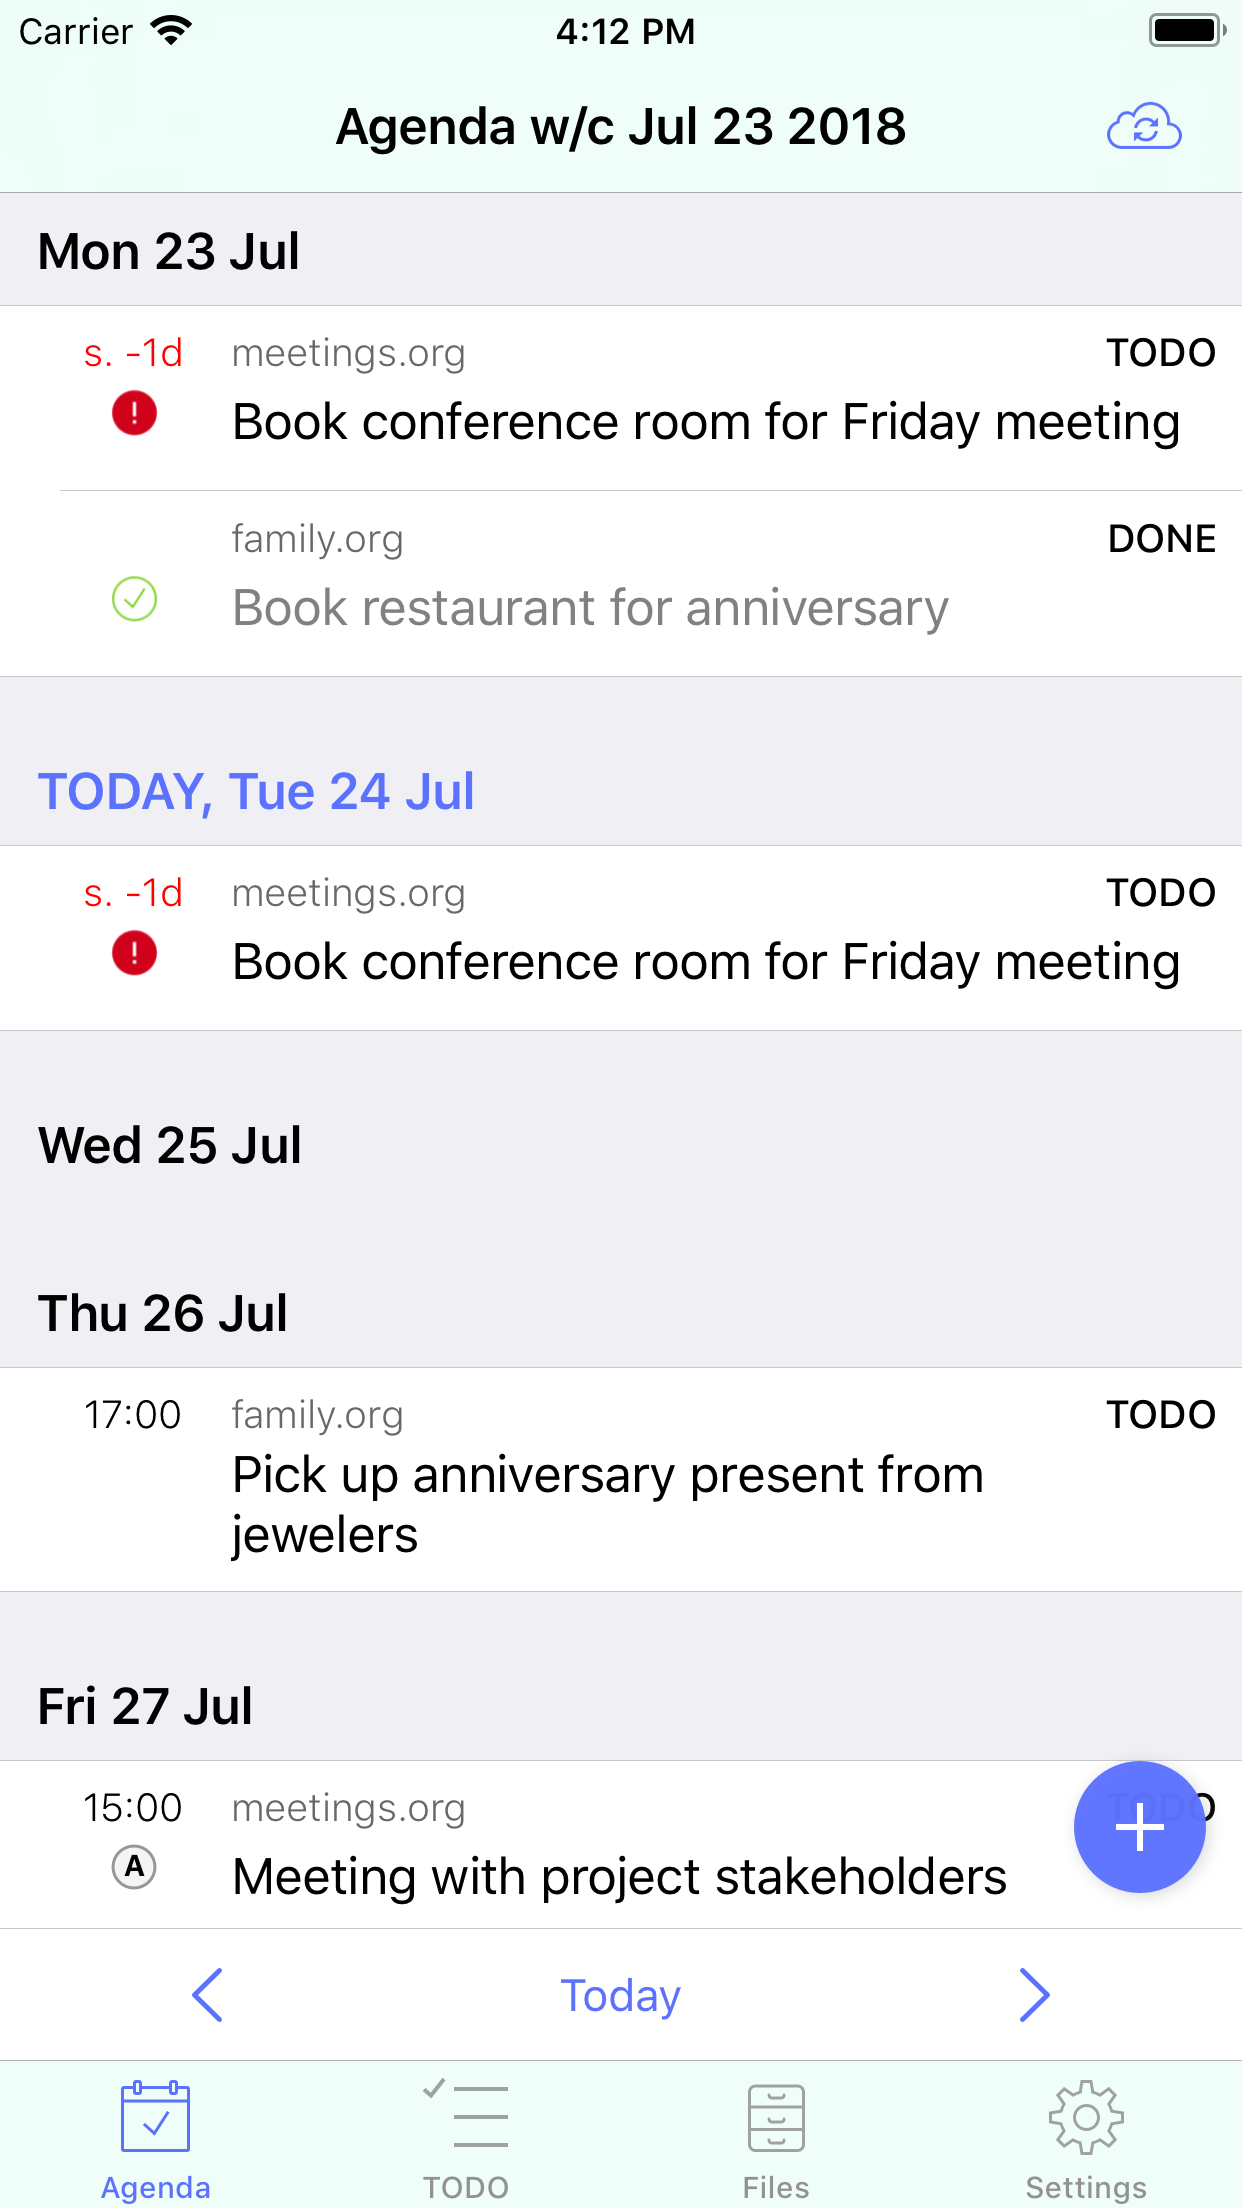 beorg gives users back control with iOS plain text task management app Image